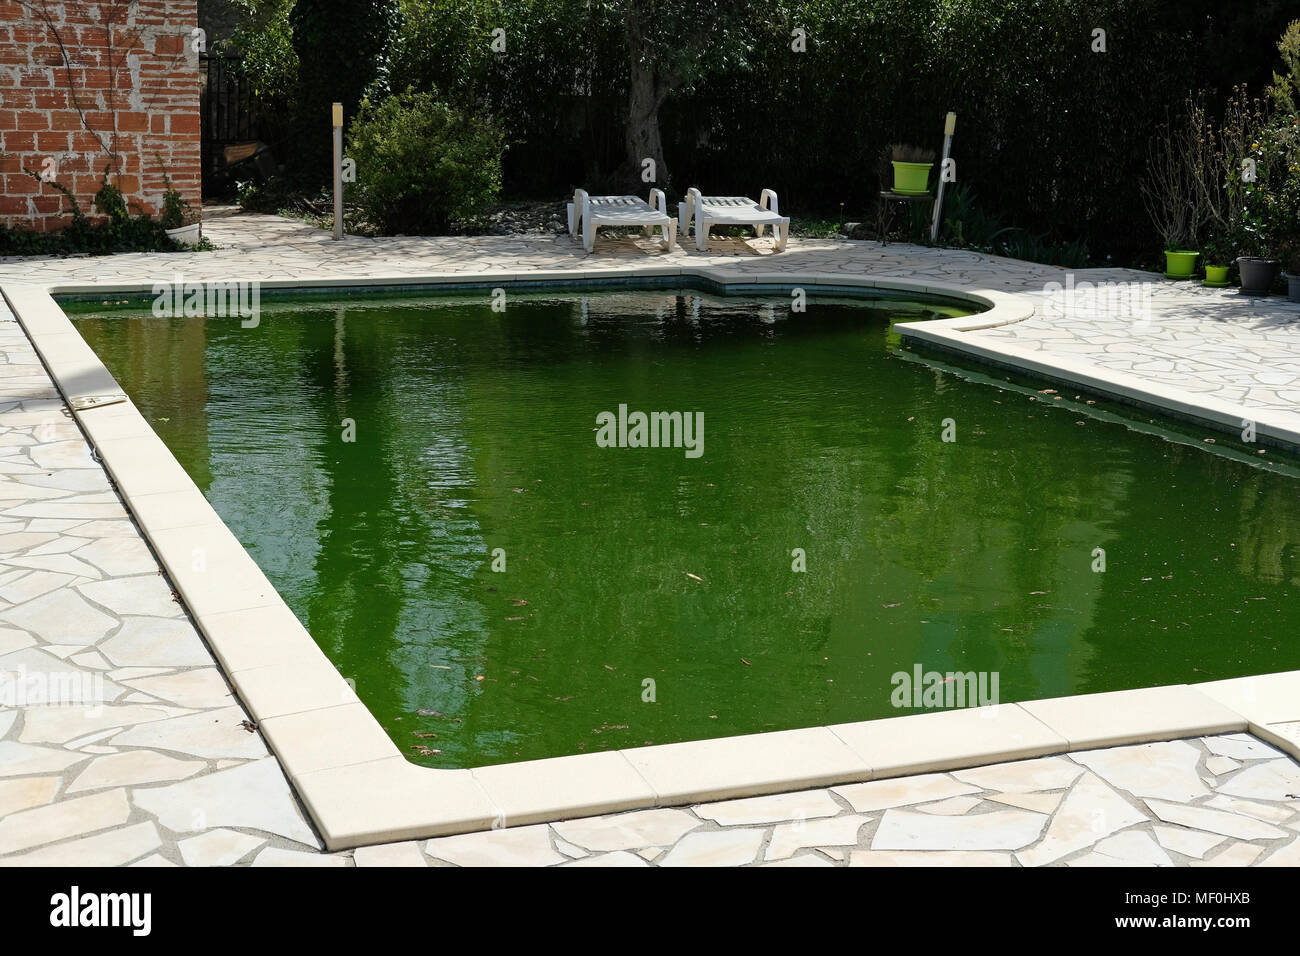 An unclean swimming pool with green water Stock Photo